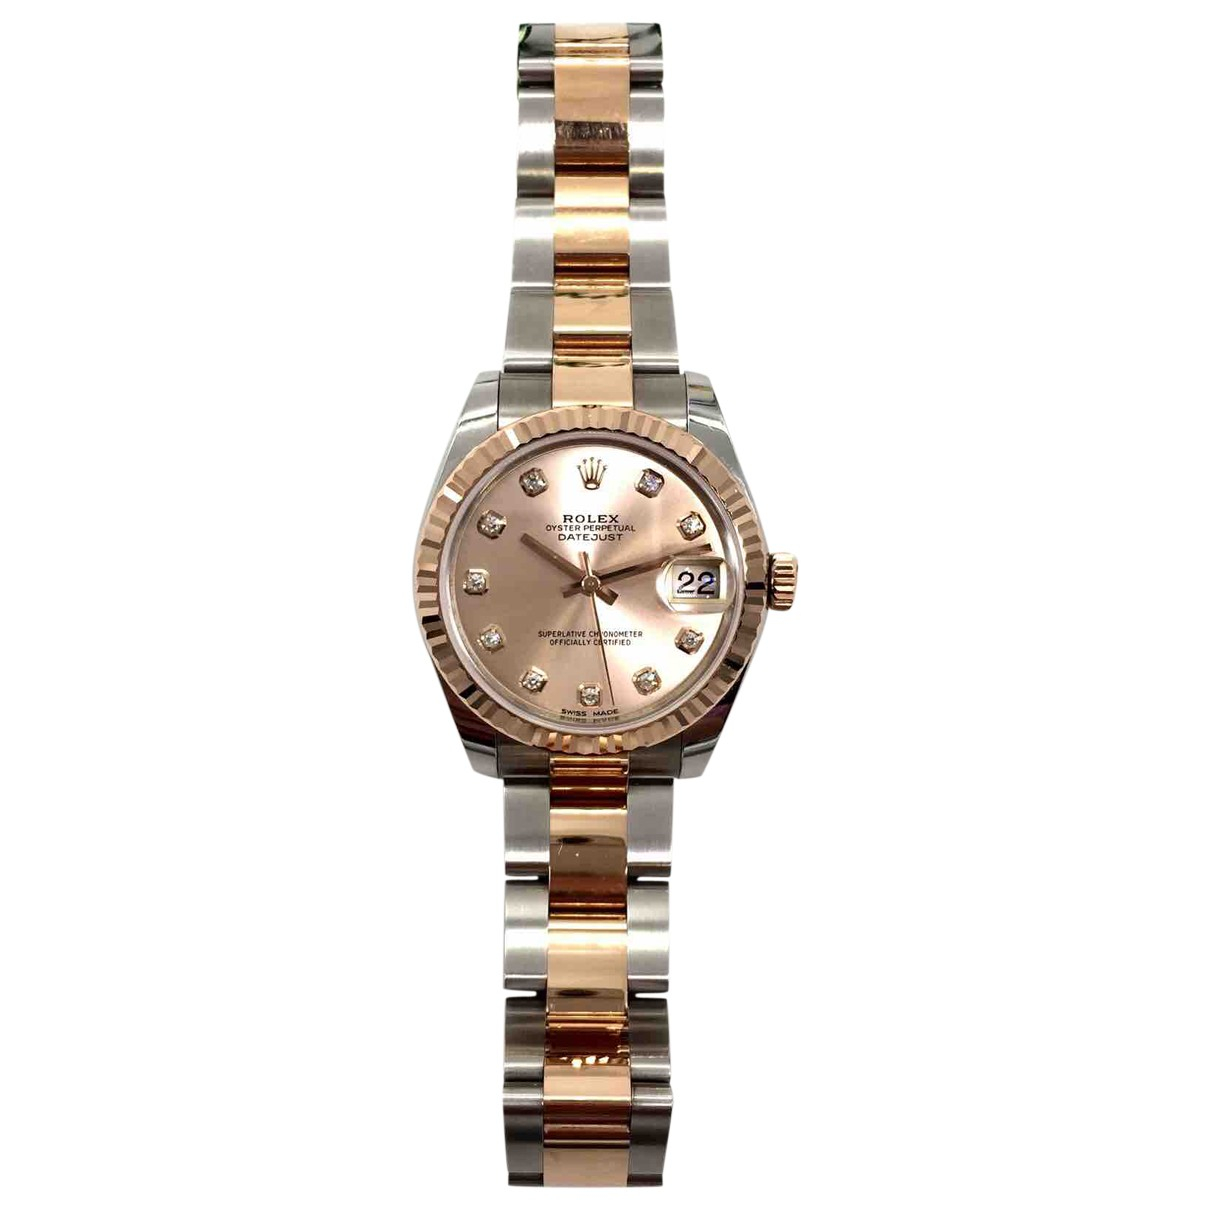 Rolex Datejust 31mm gold and steel watch for Women N